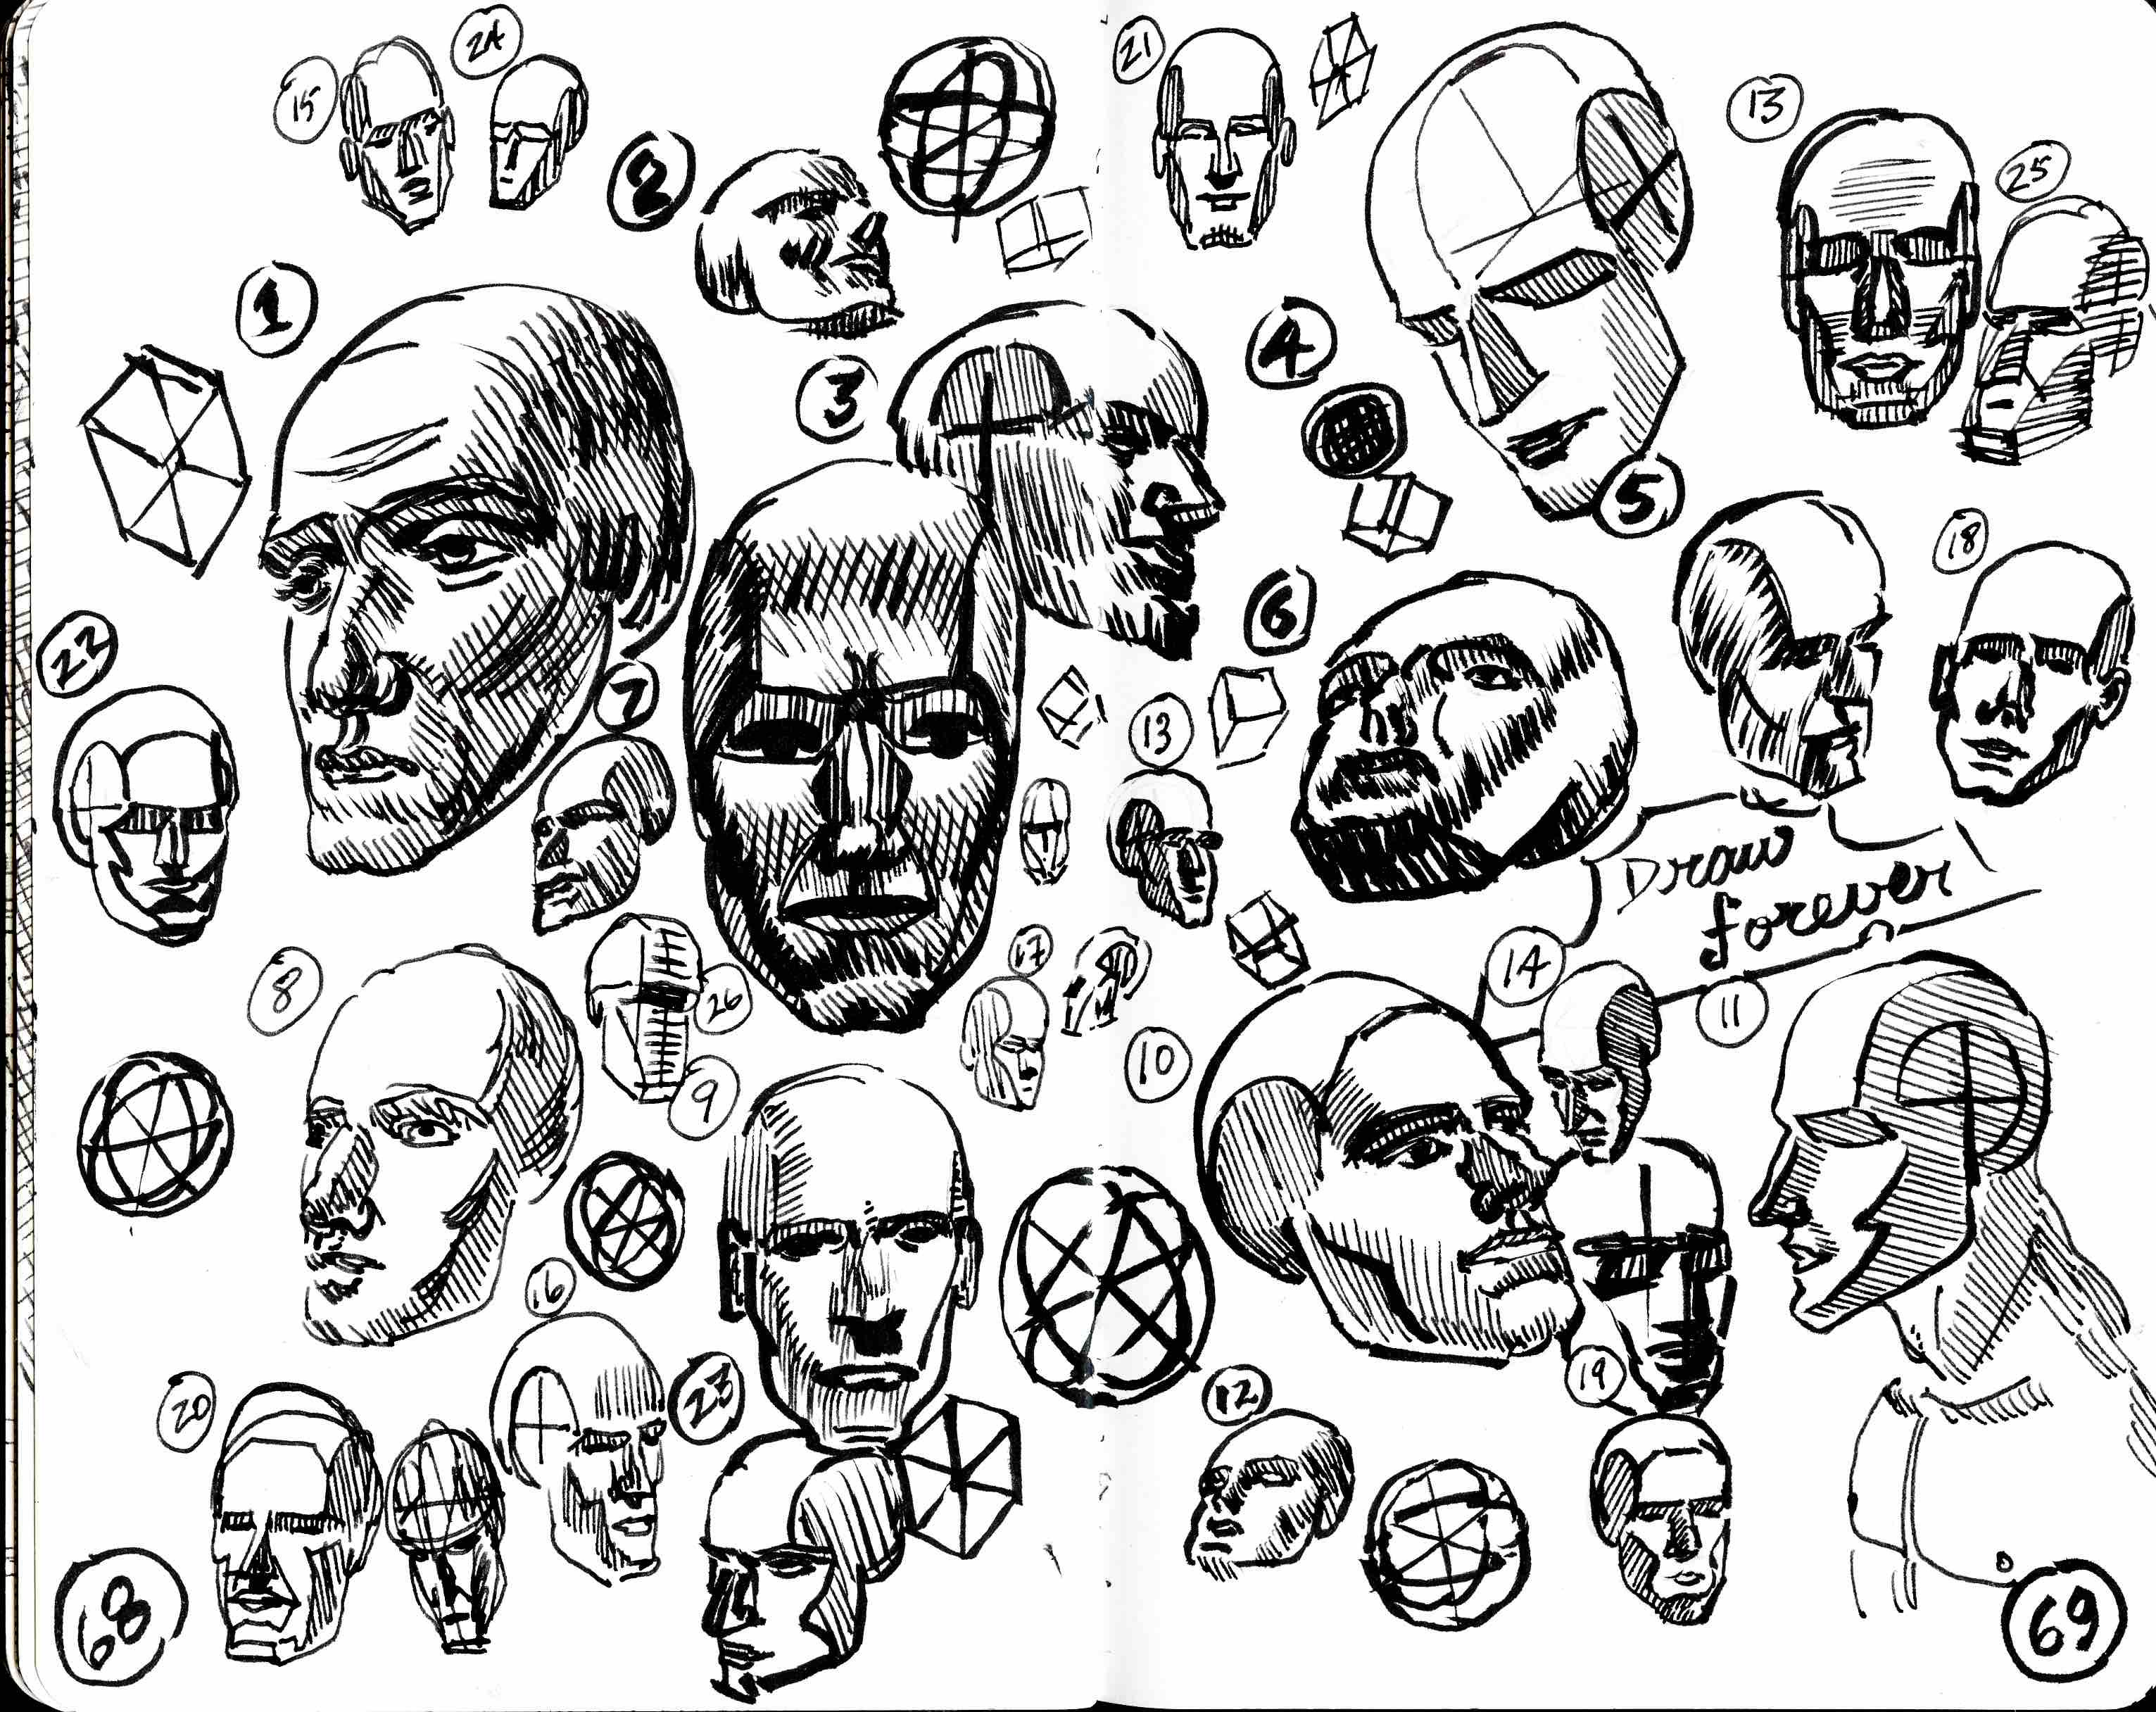 Draw the manikin head over and over again until you can put it in any position quickly and with out reference.